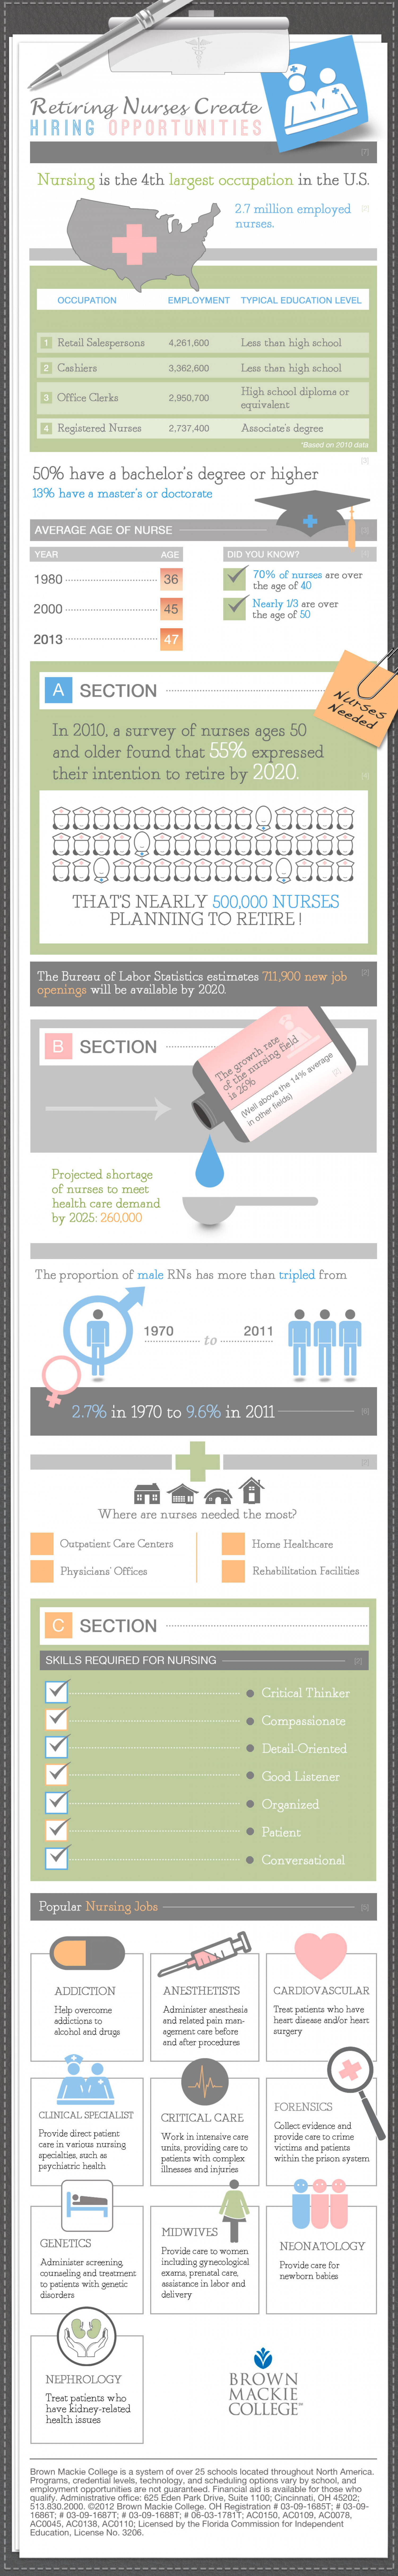 Hiring Opportunities for Nurses Infographic